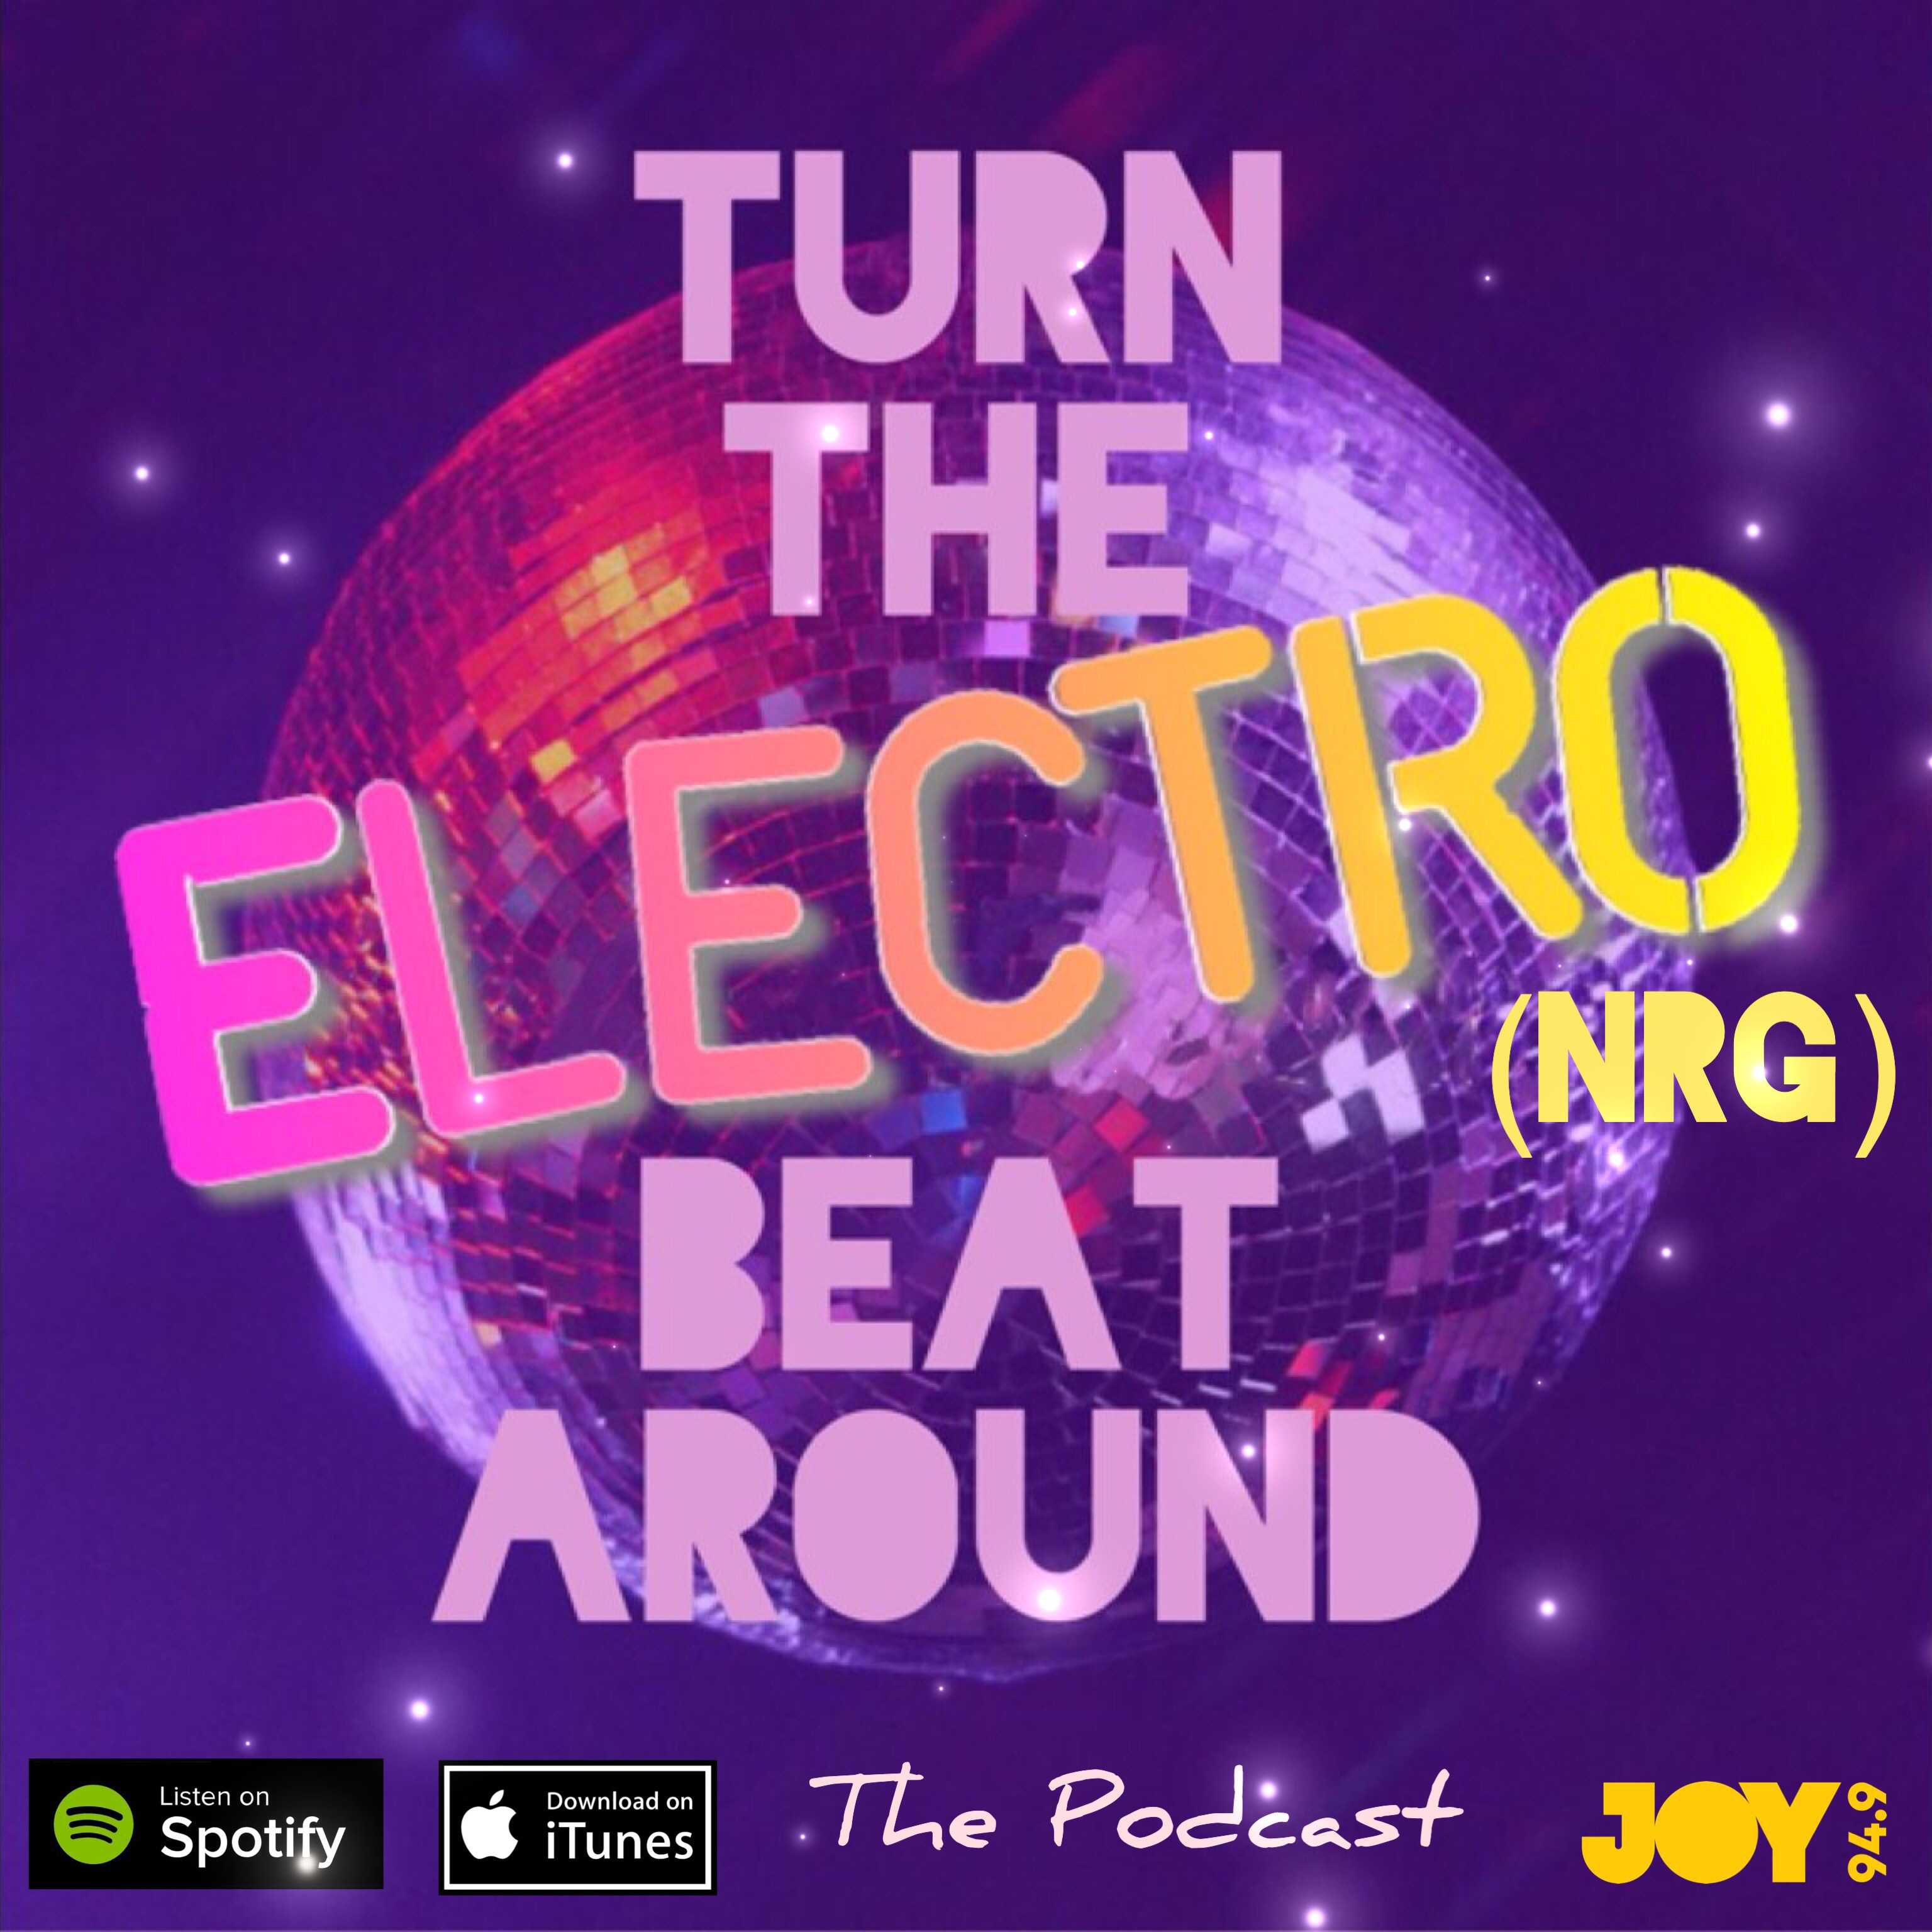 Electro (NRG) - The Podcast PT1